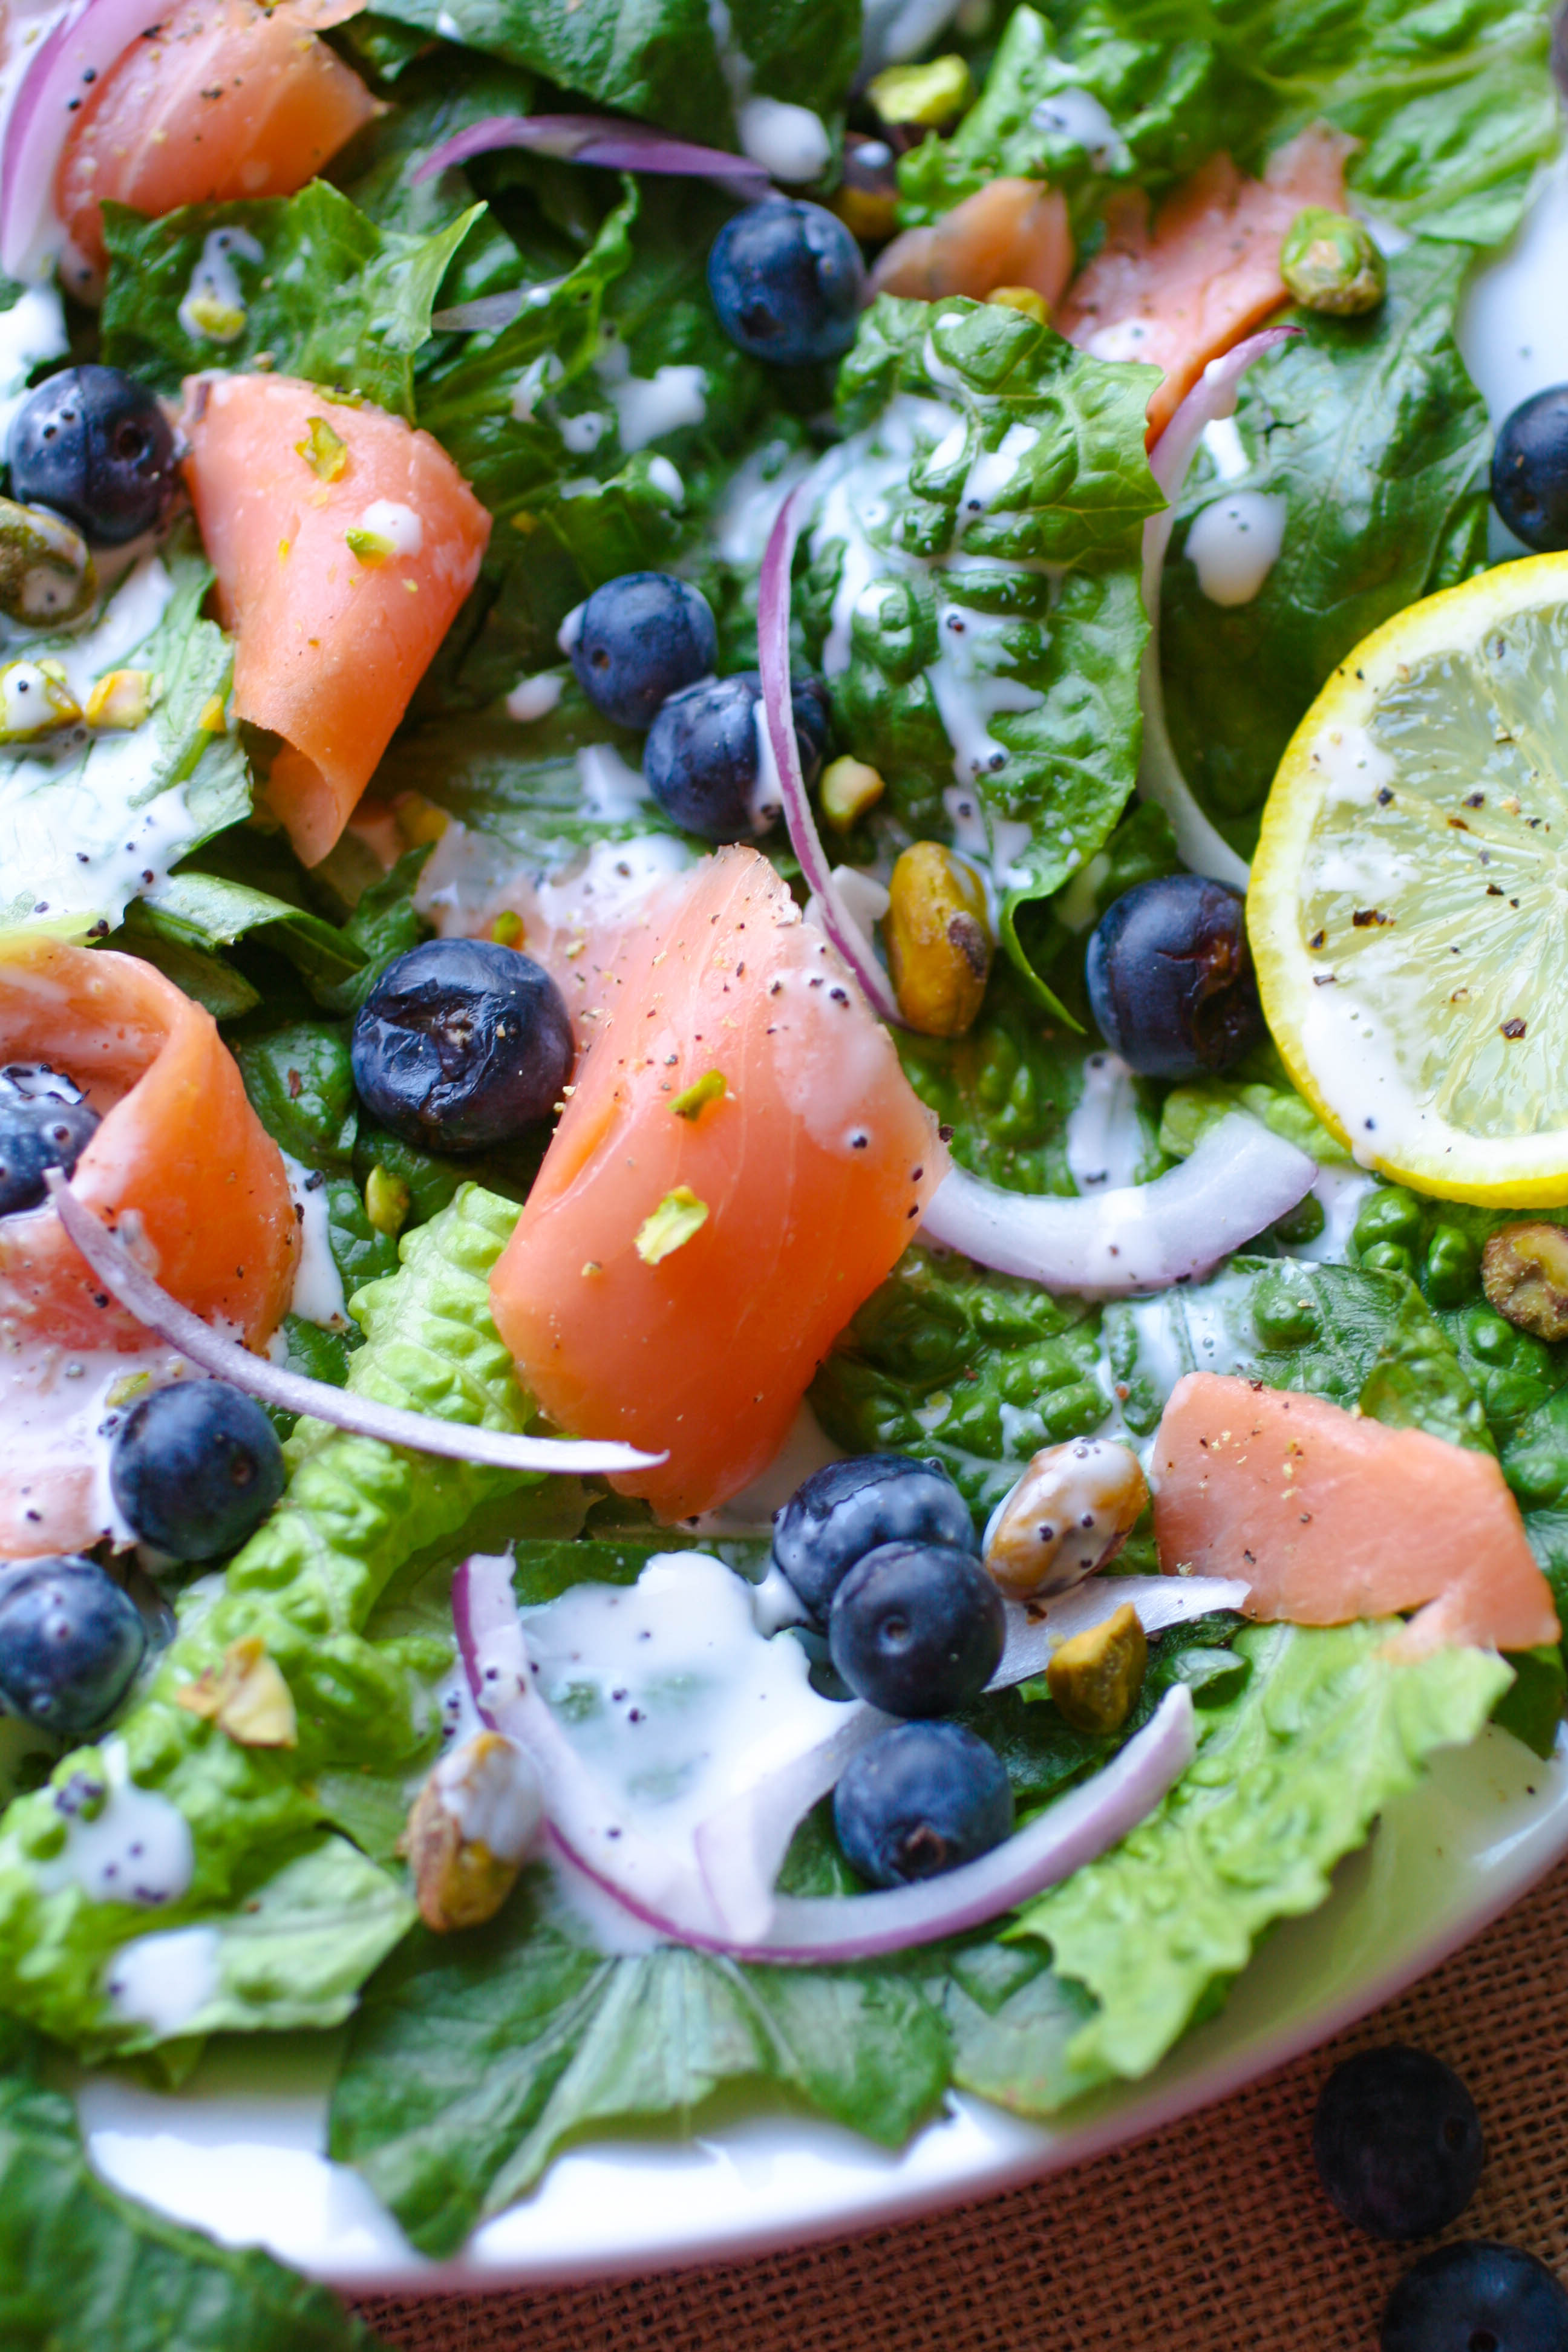 Smoked Salmon Salad with Blueberries and Lemon Poppy Seed Dressing is a filling meal. No oven required for this summer dish.